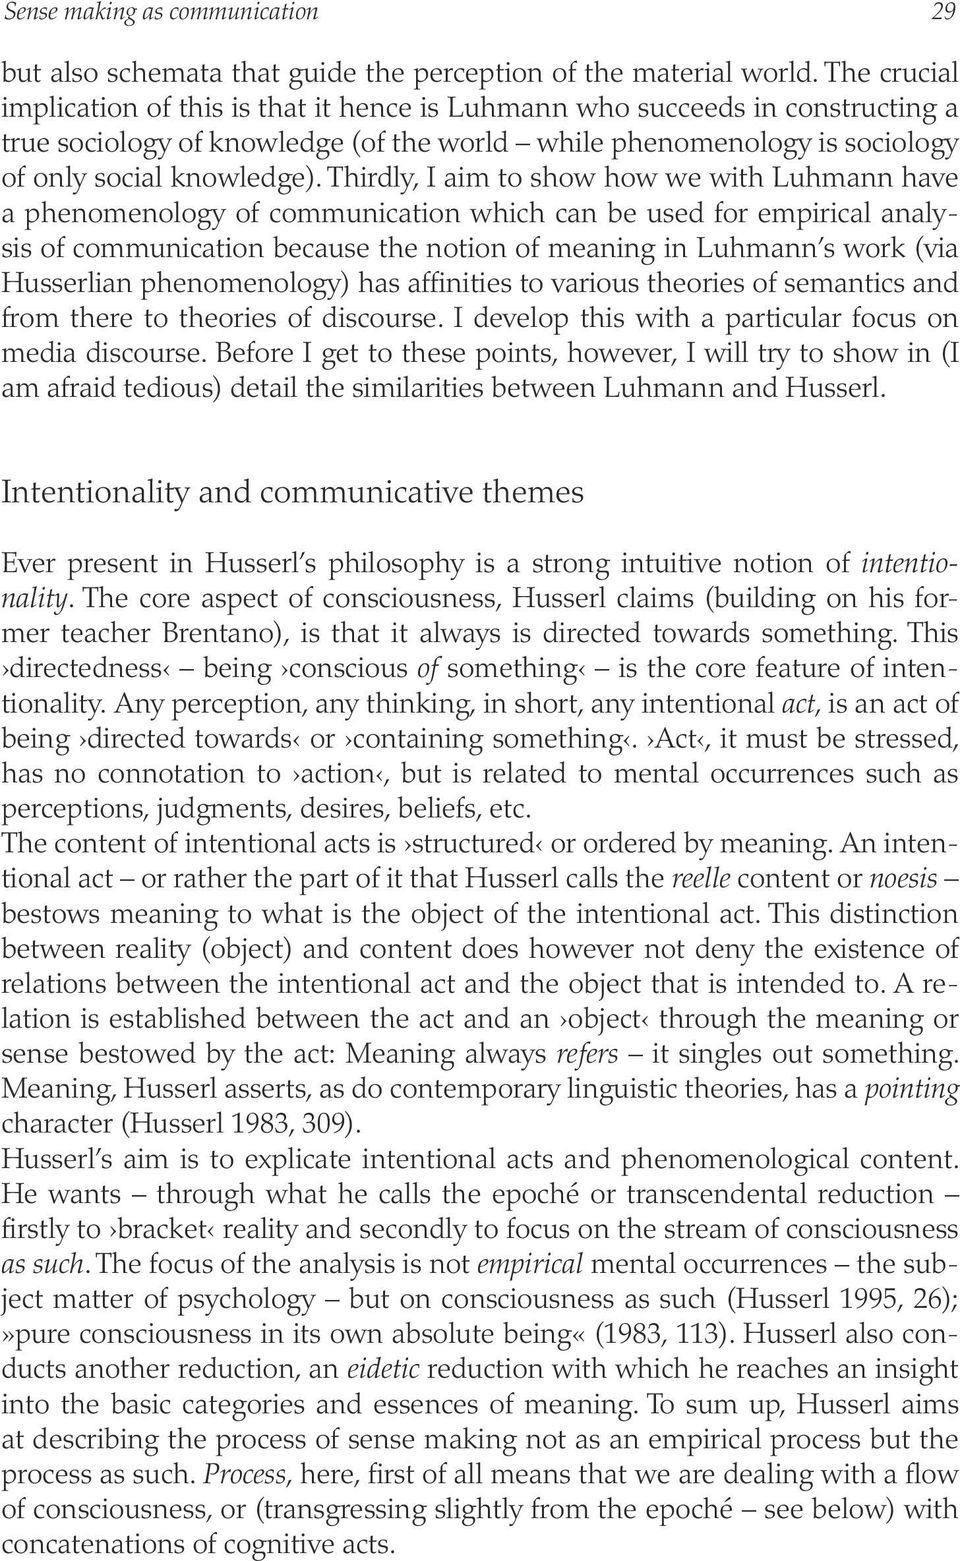 Thirdly, I aim to show how we with Luhmann have a phenomenology of communication which can be used for empirical analysis of communication because the notion of meaning in Luhmann s work (via